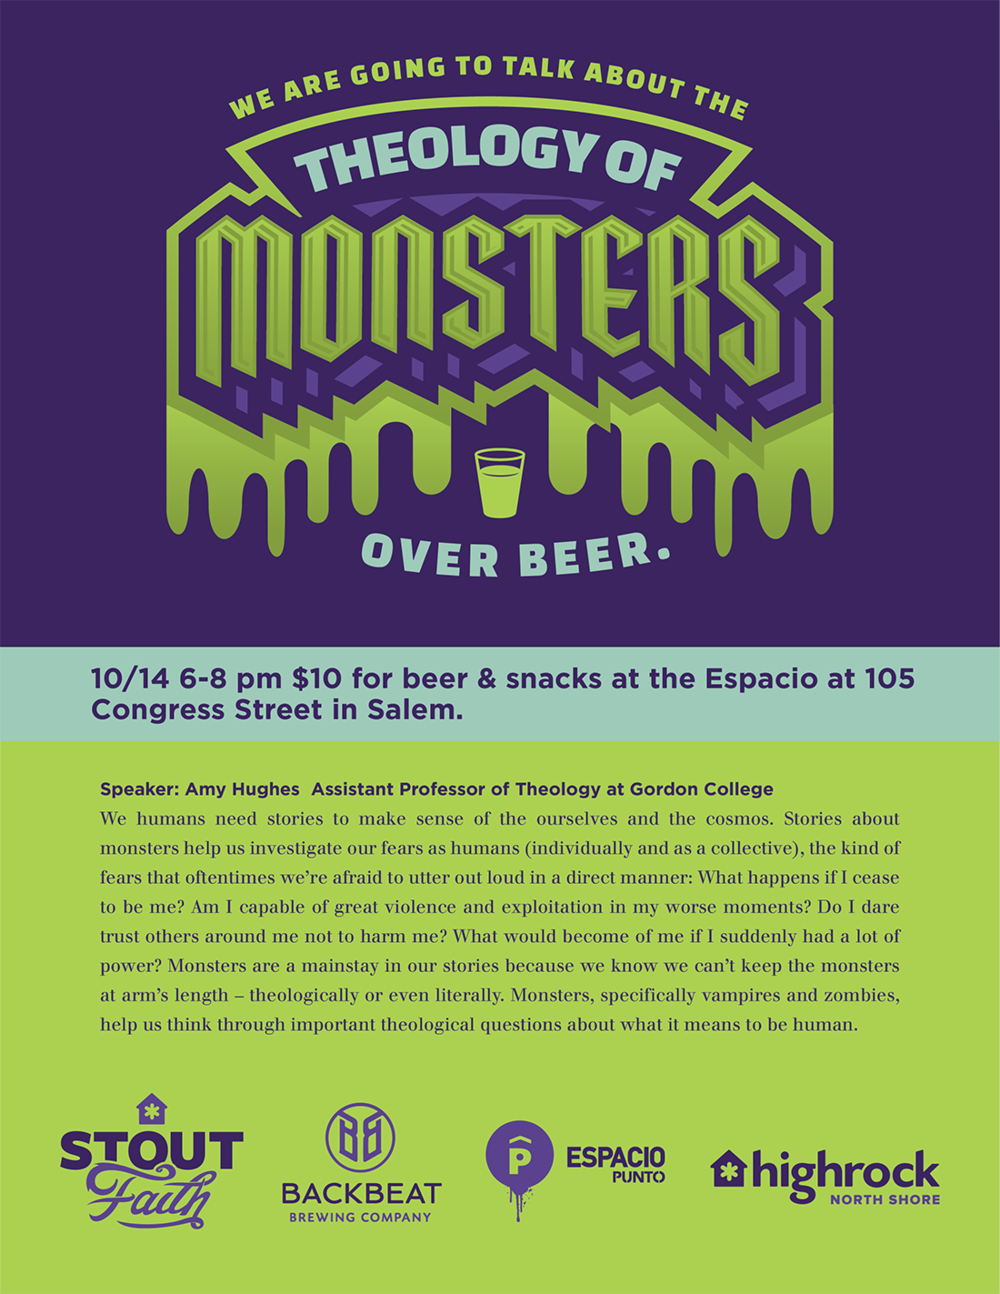 Stoutfaith-TheologyofMonsters-poster.png